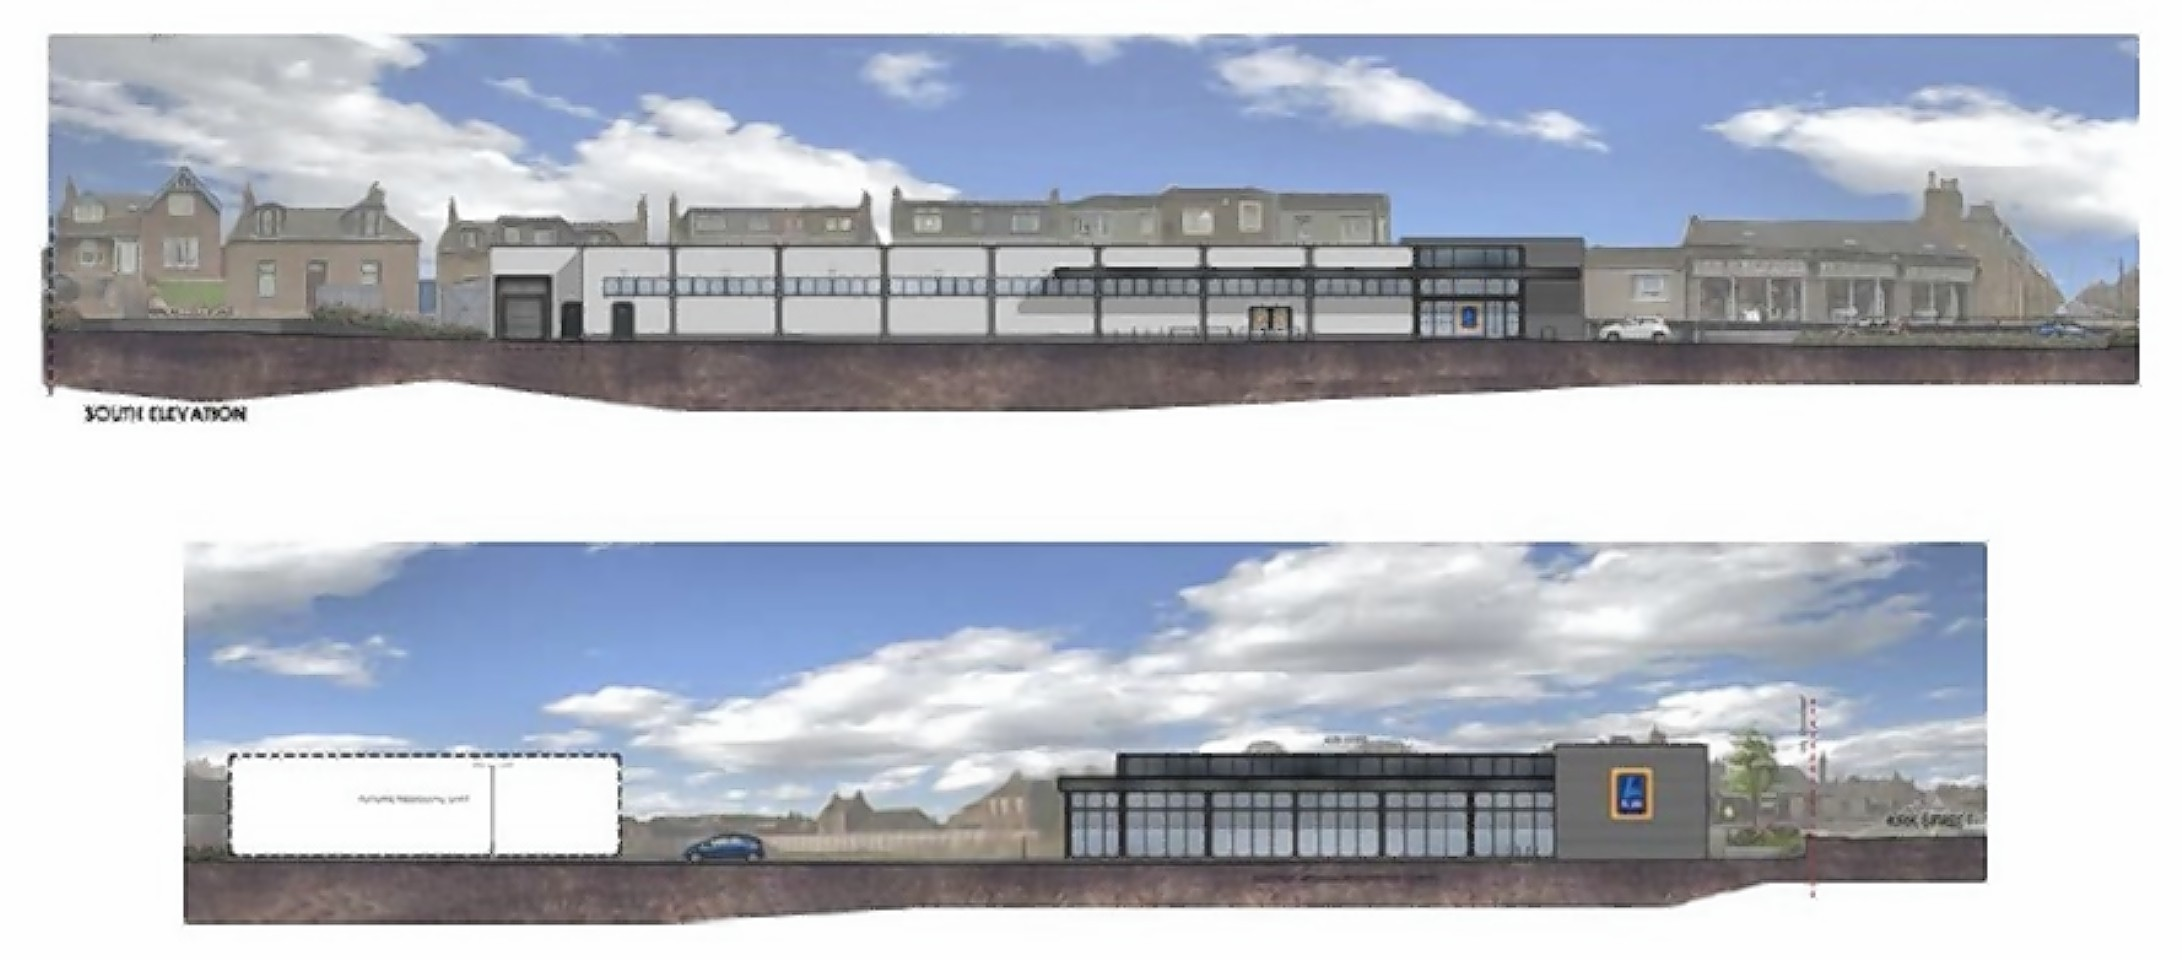 Aldi has been granted permission to transform the former Kirkburn Mill land in Peterhead into a retail outlet